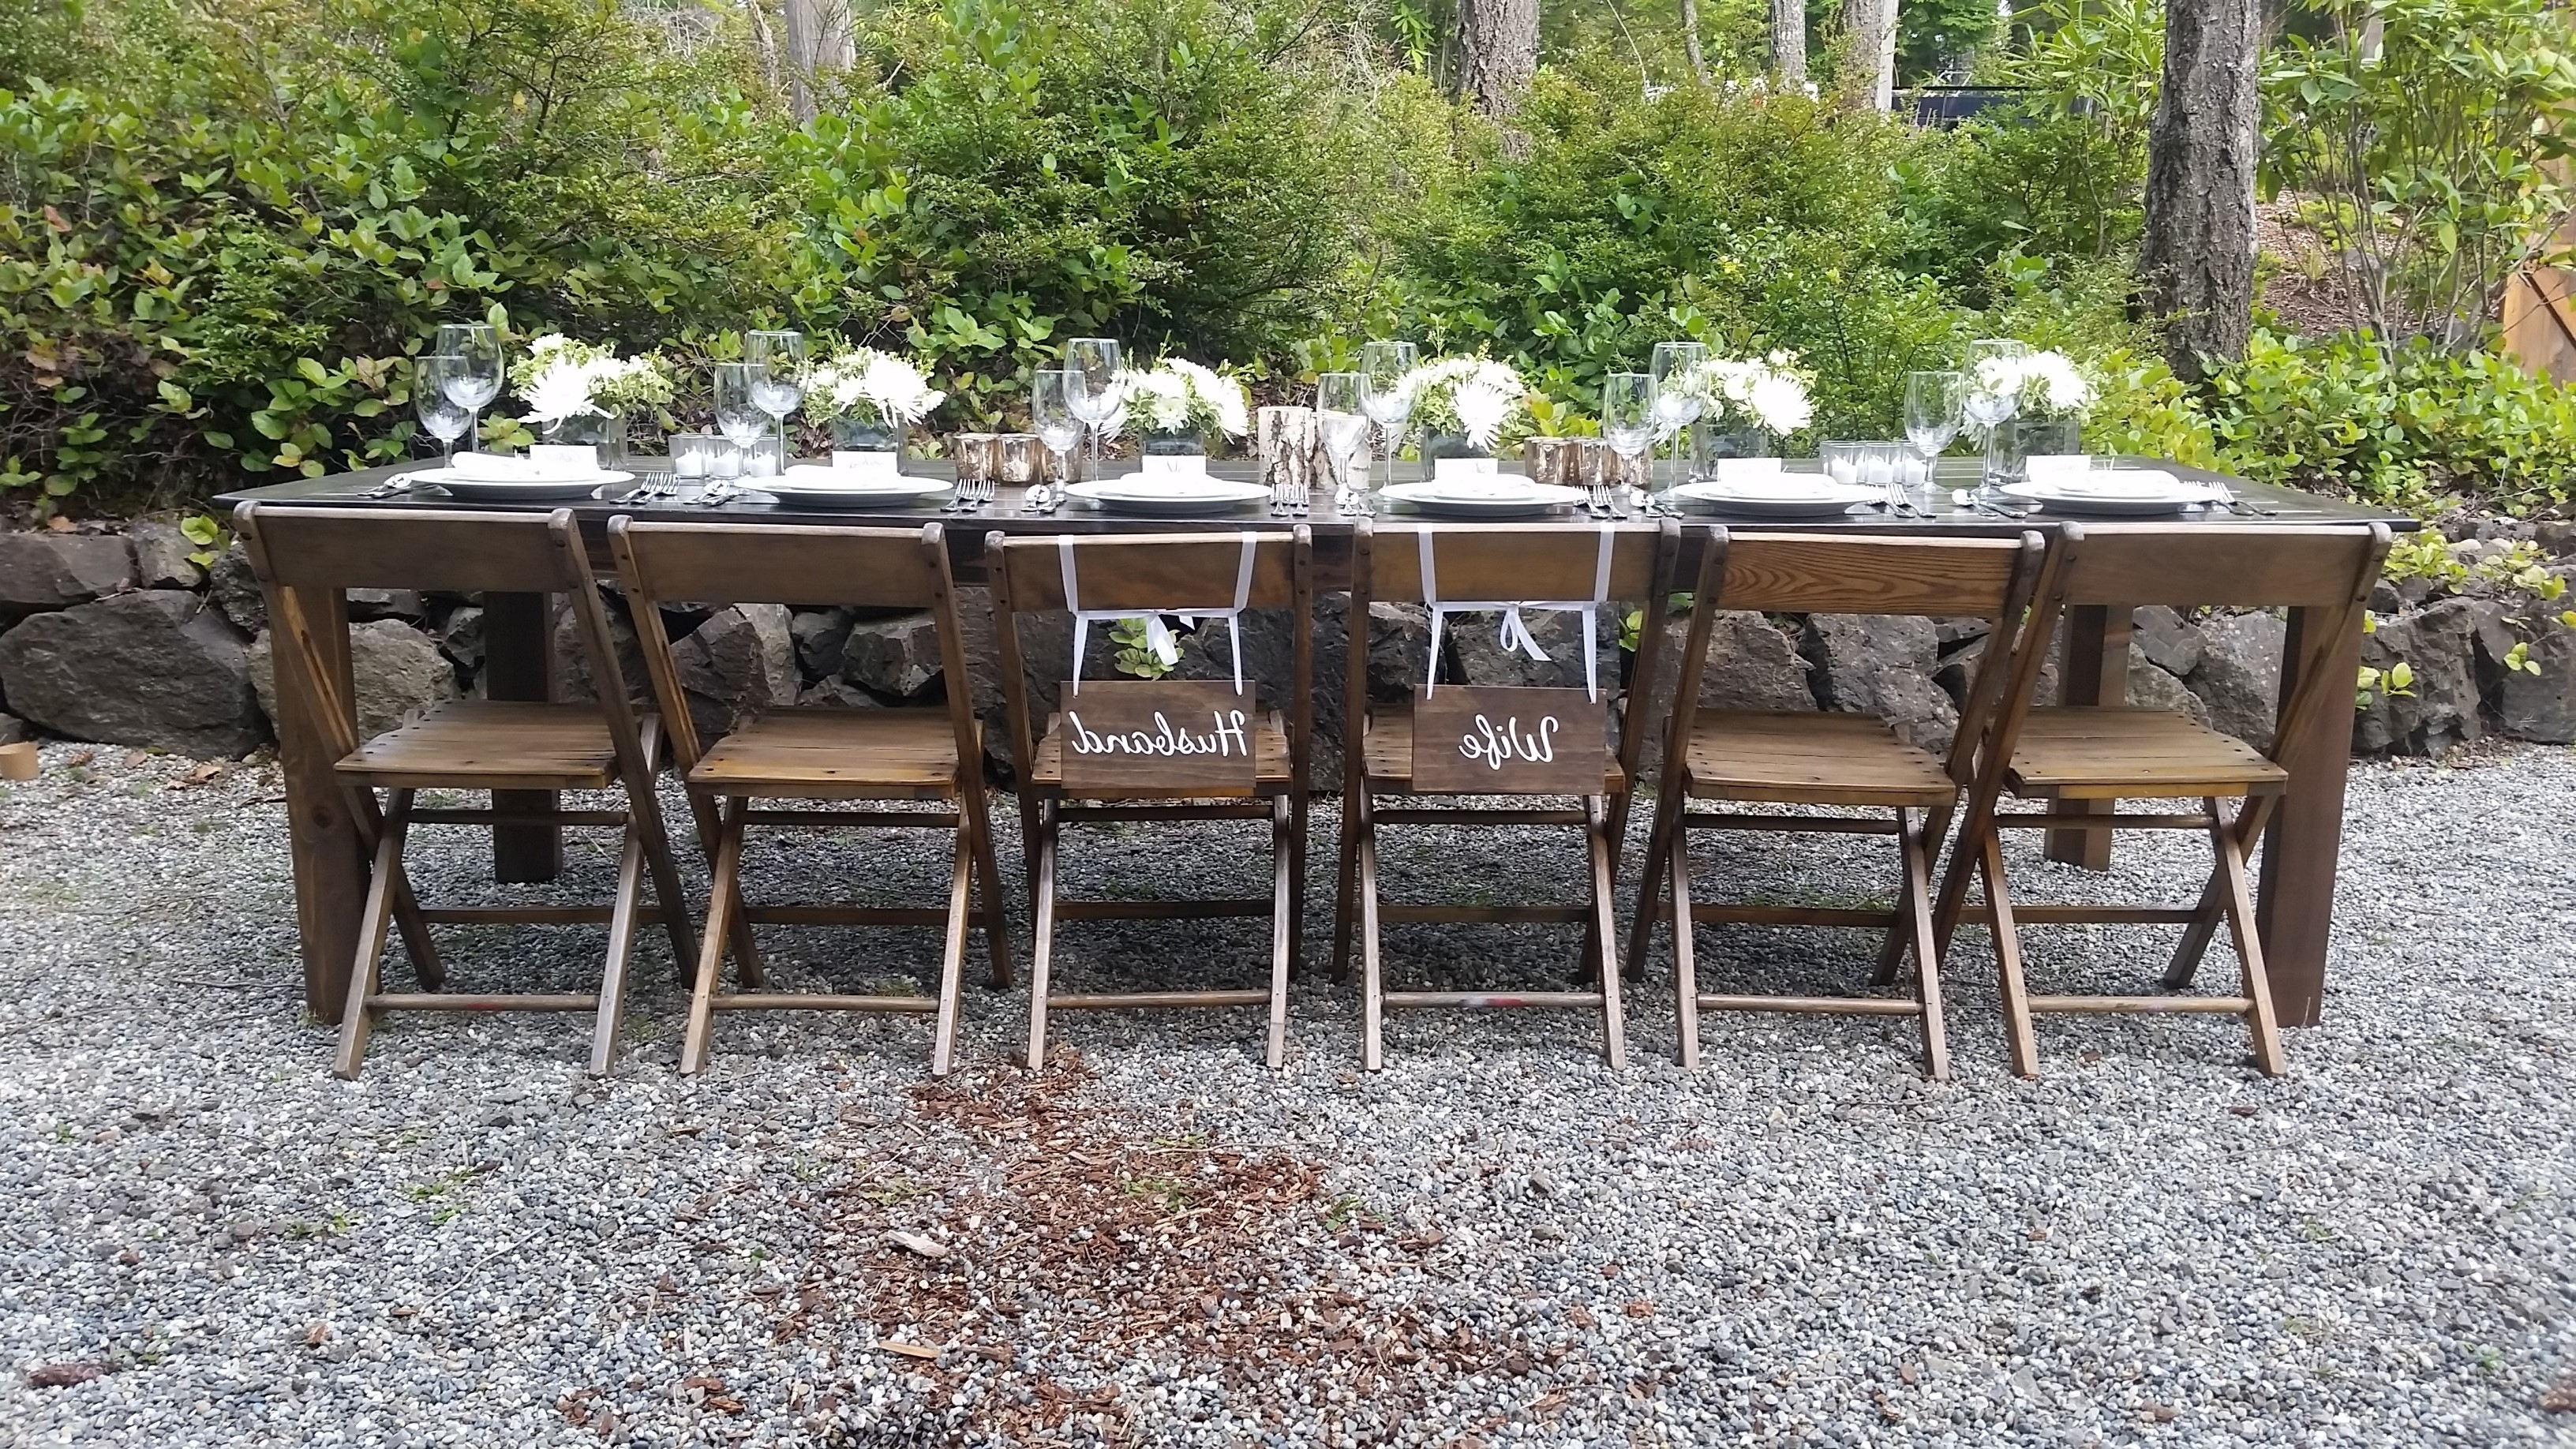 Patio Umbrellas For Rent Intended For Most Current Olympic Farm Style Events (View 11 of 20)